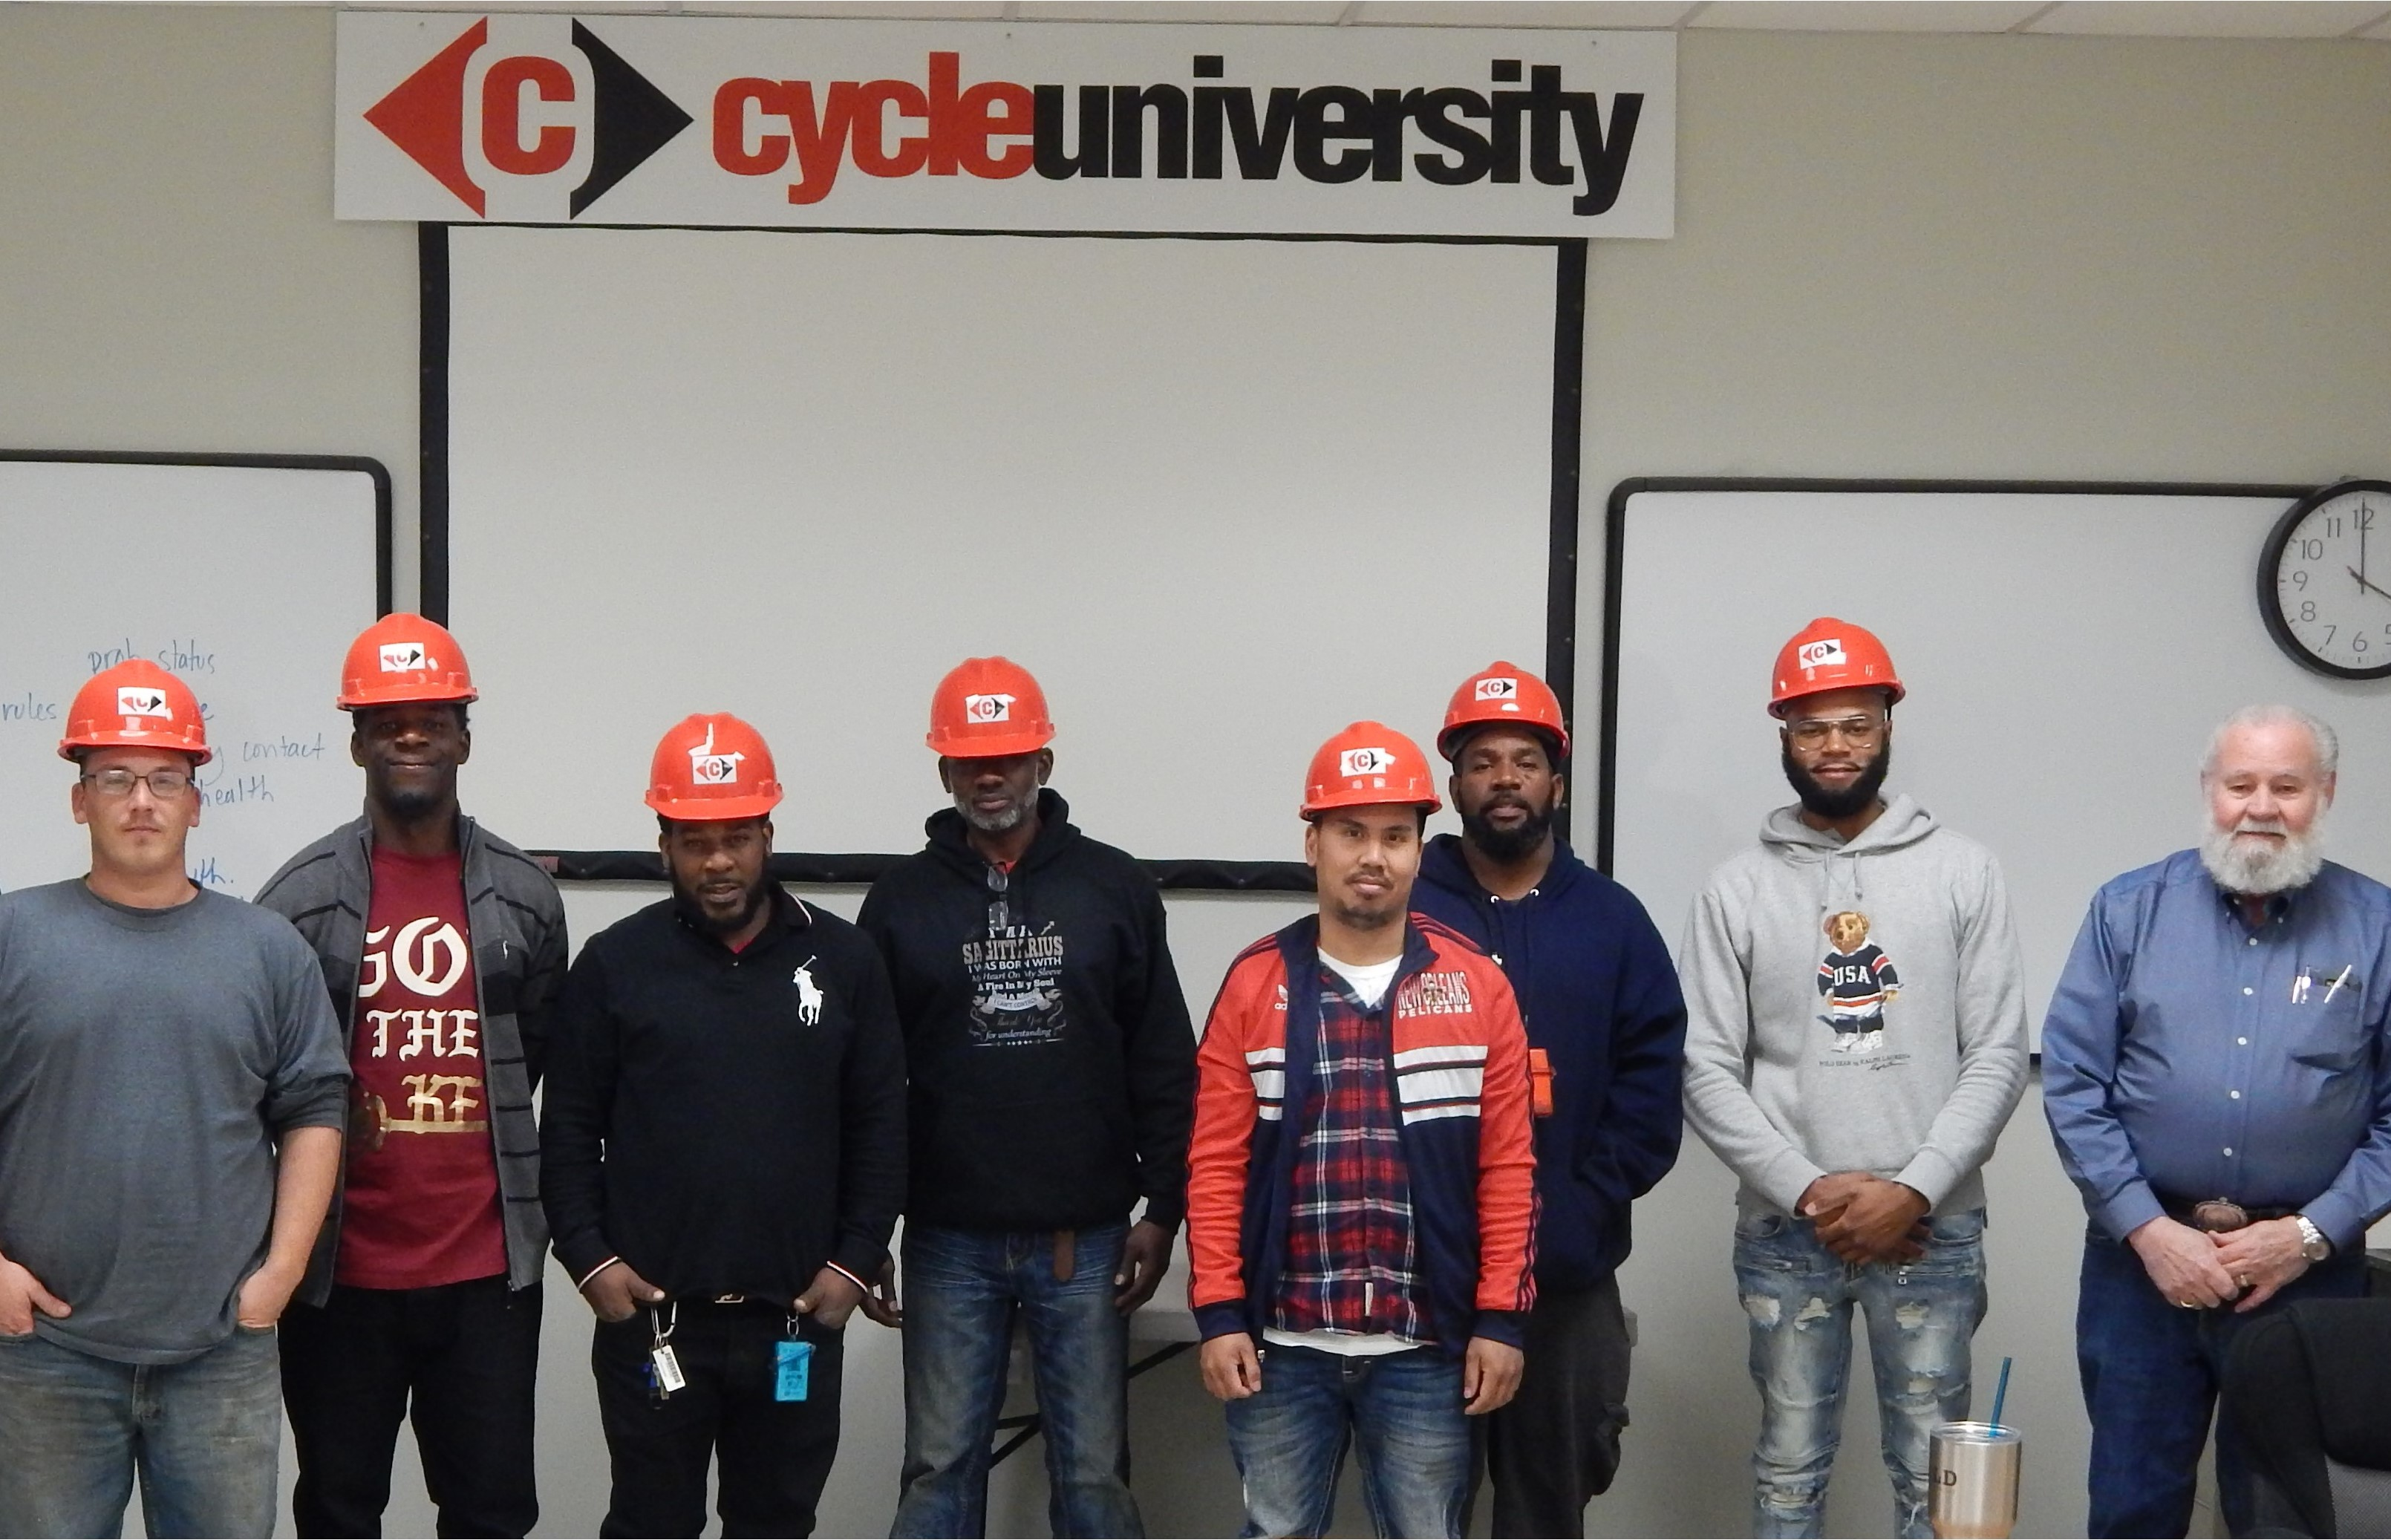 Men presented with red hard hats